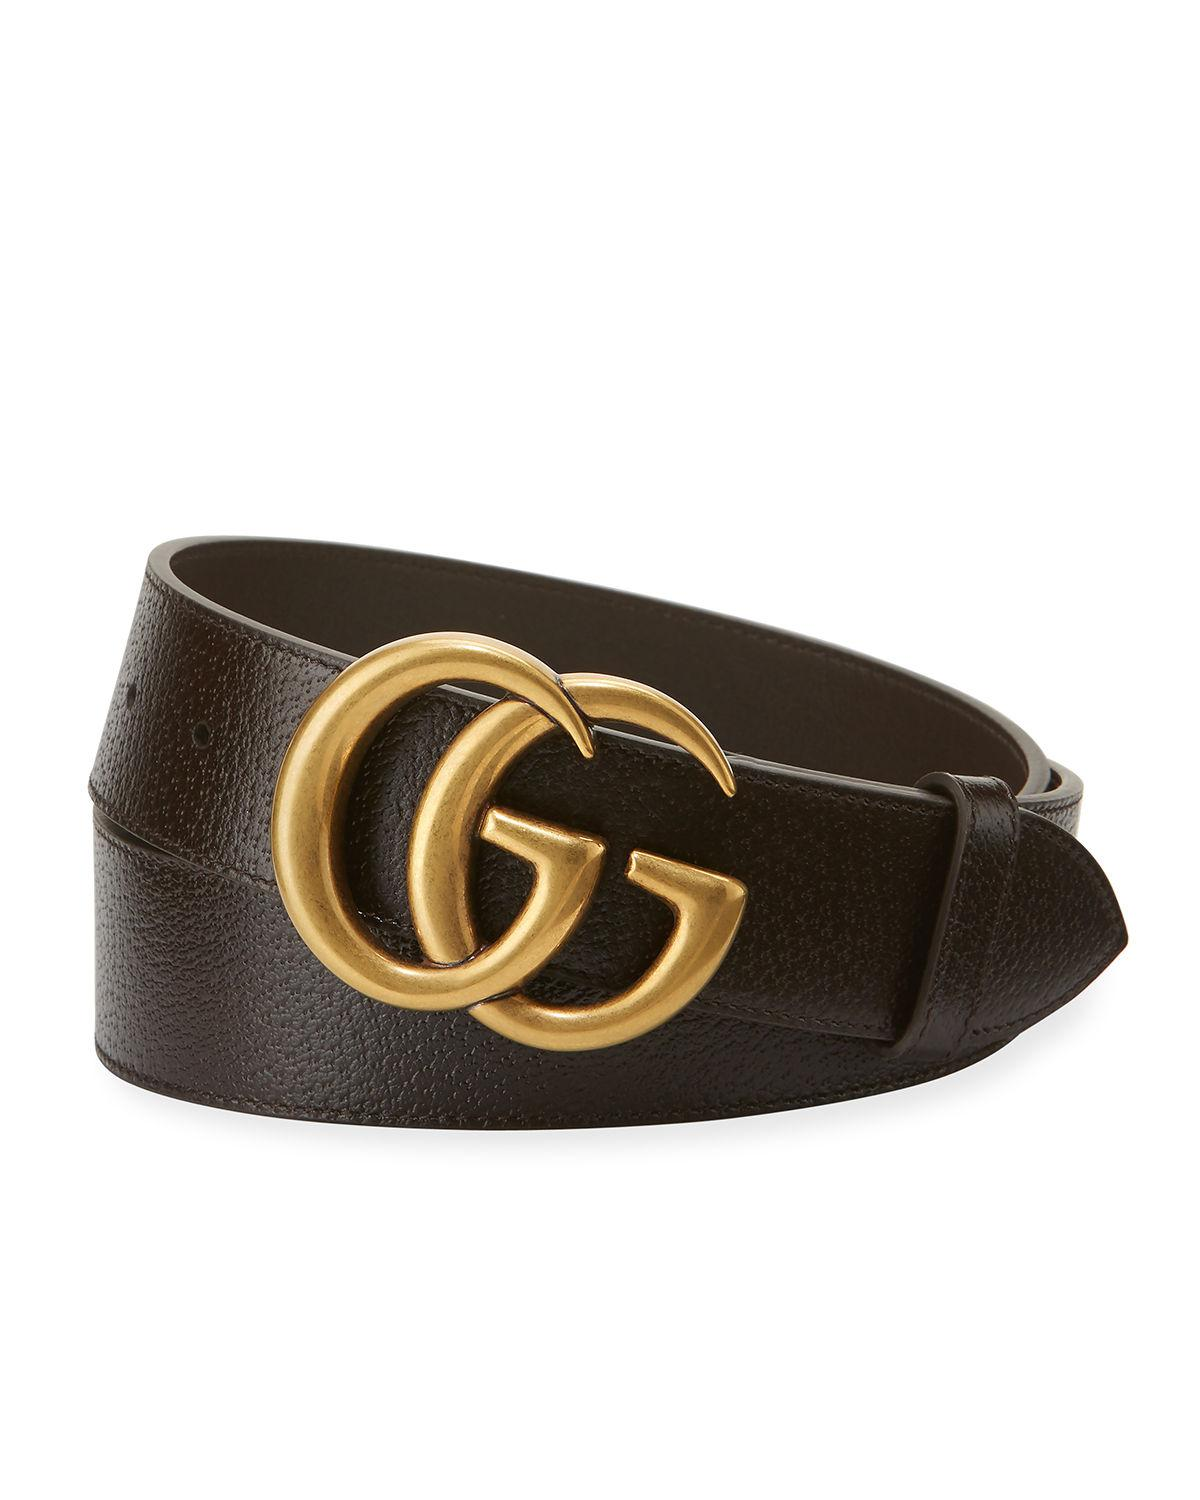 c9b10722d5f Lyst - Gucci Men s Leather Belt With Double-g Buckle in Brown